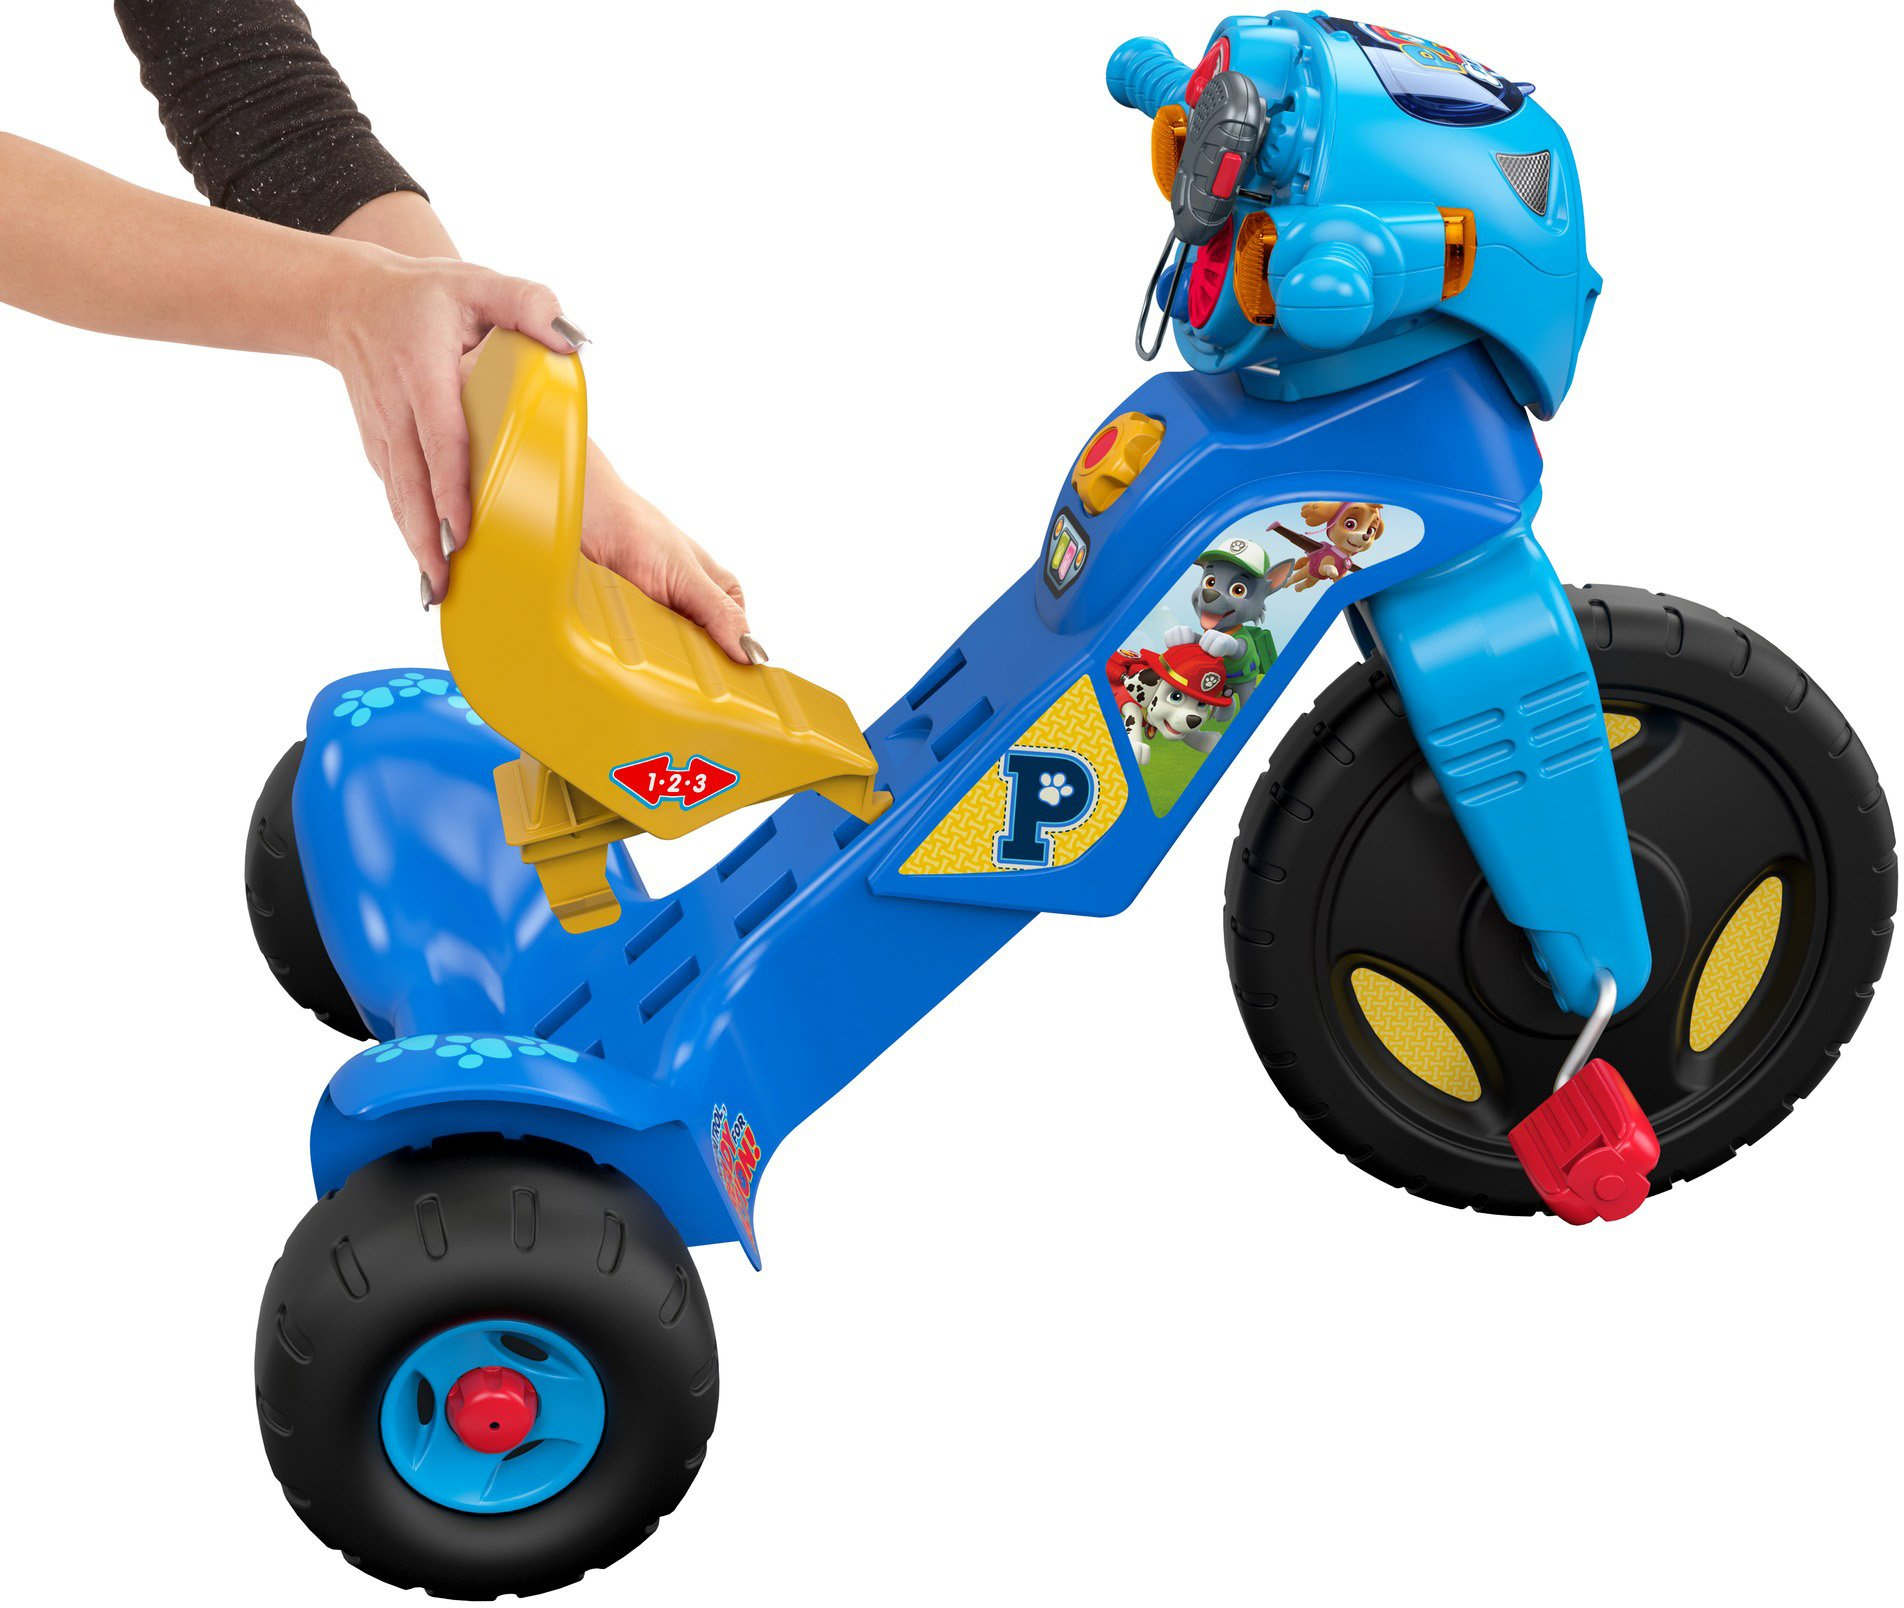 Fisher Price Nickelodeon PAW Patrol Lights & Sounds Trike